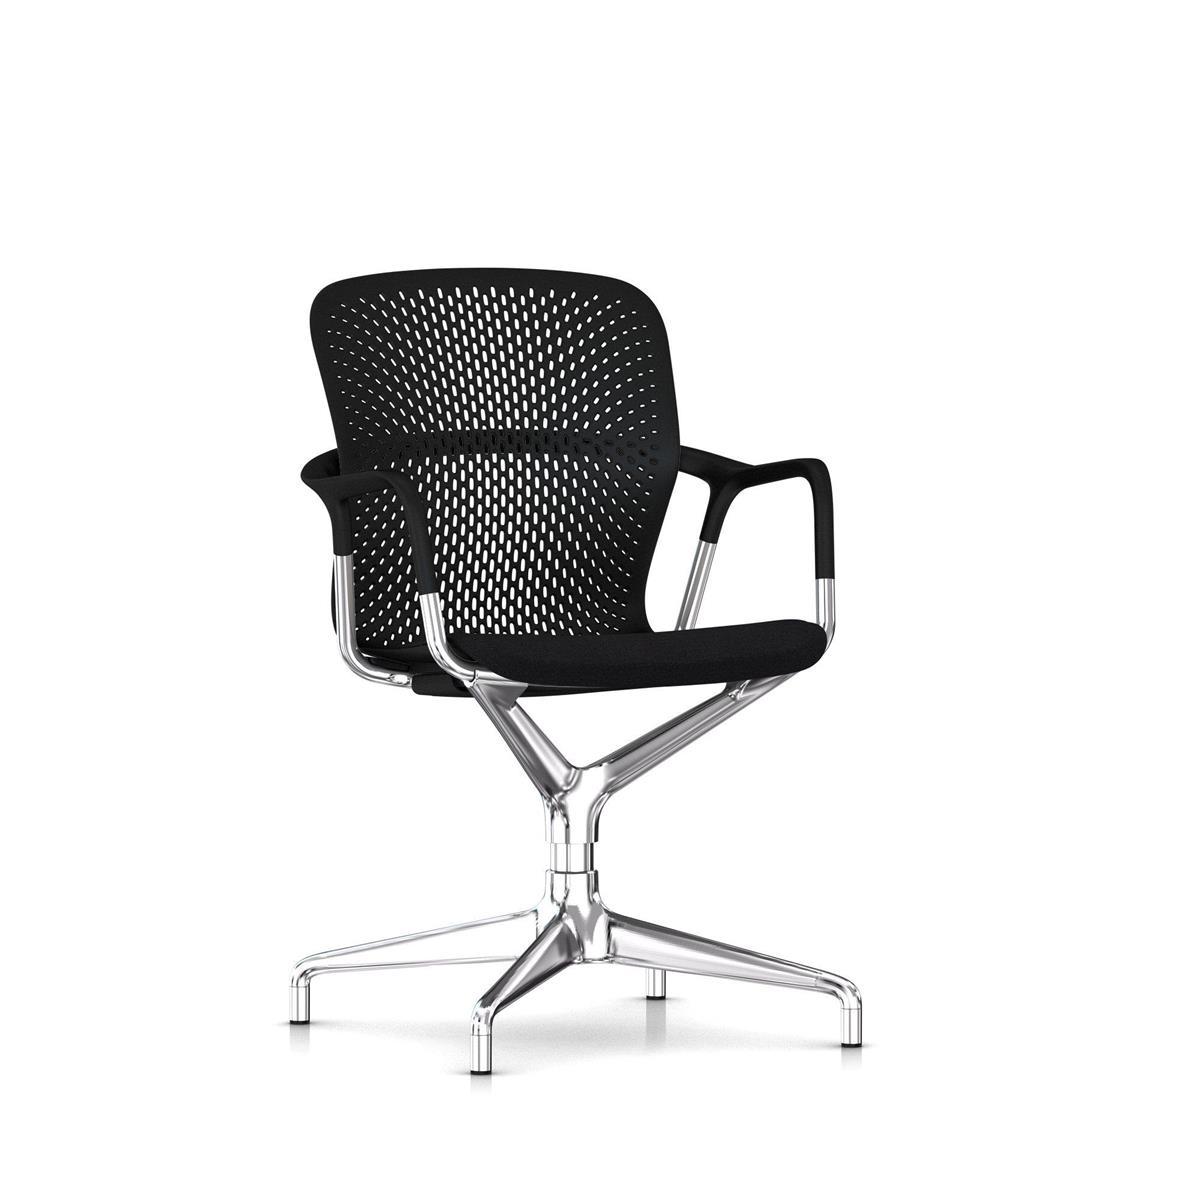 Keyn 4 Star Pedestal - Black & Polished Alu med sete i Camira Sprint, glidere for alle underlag